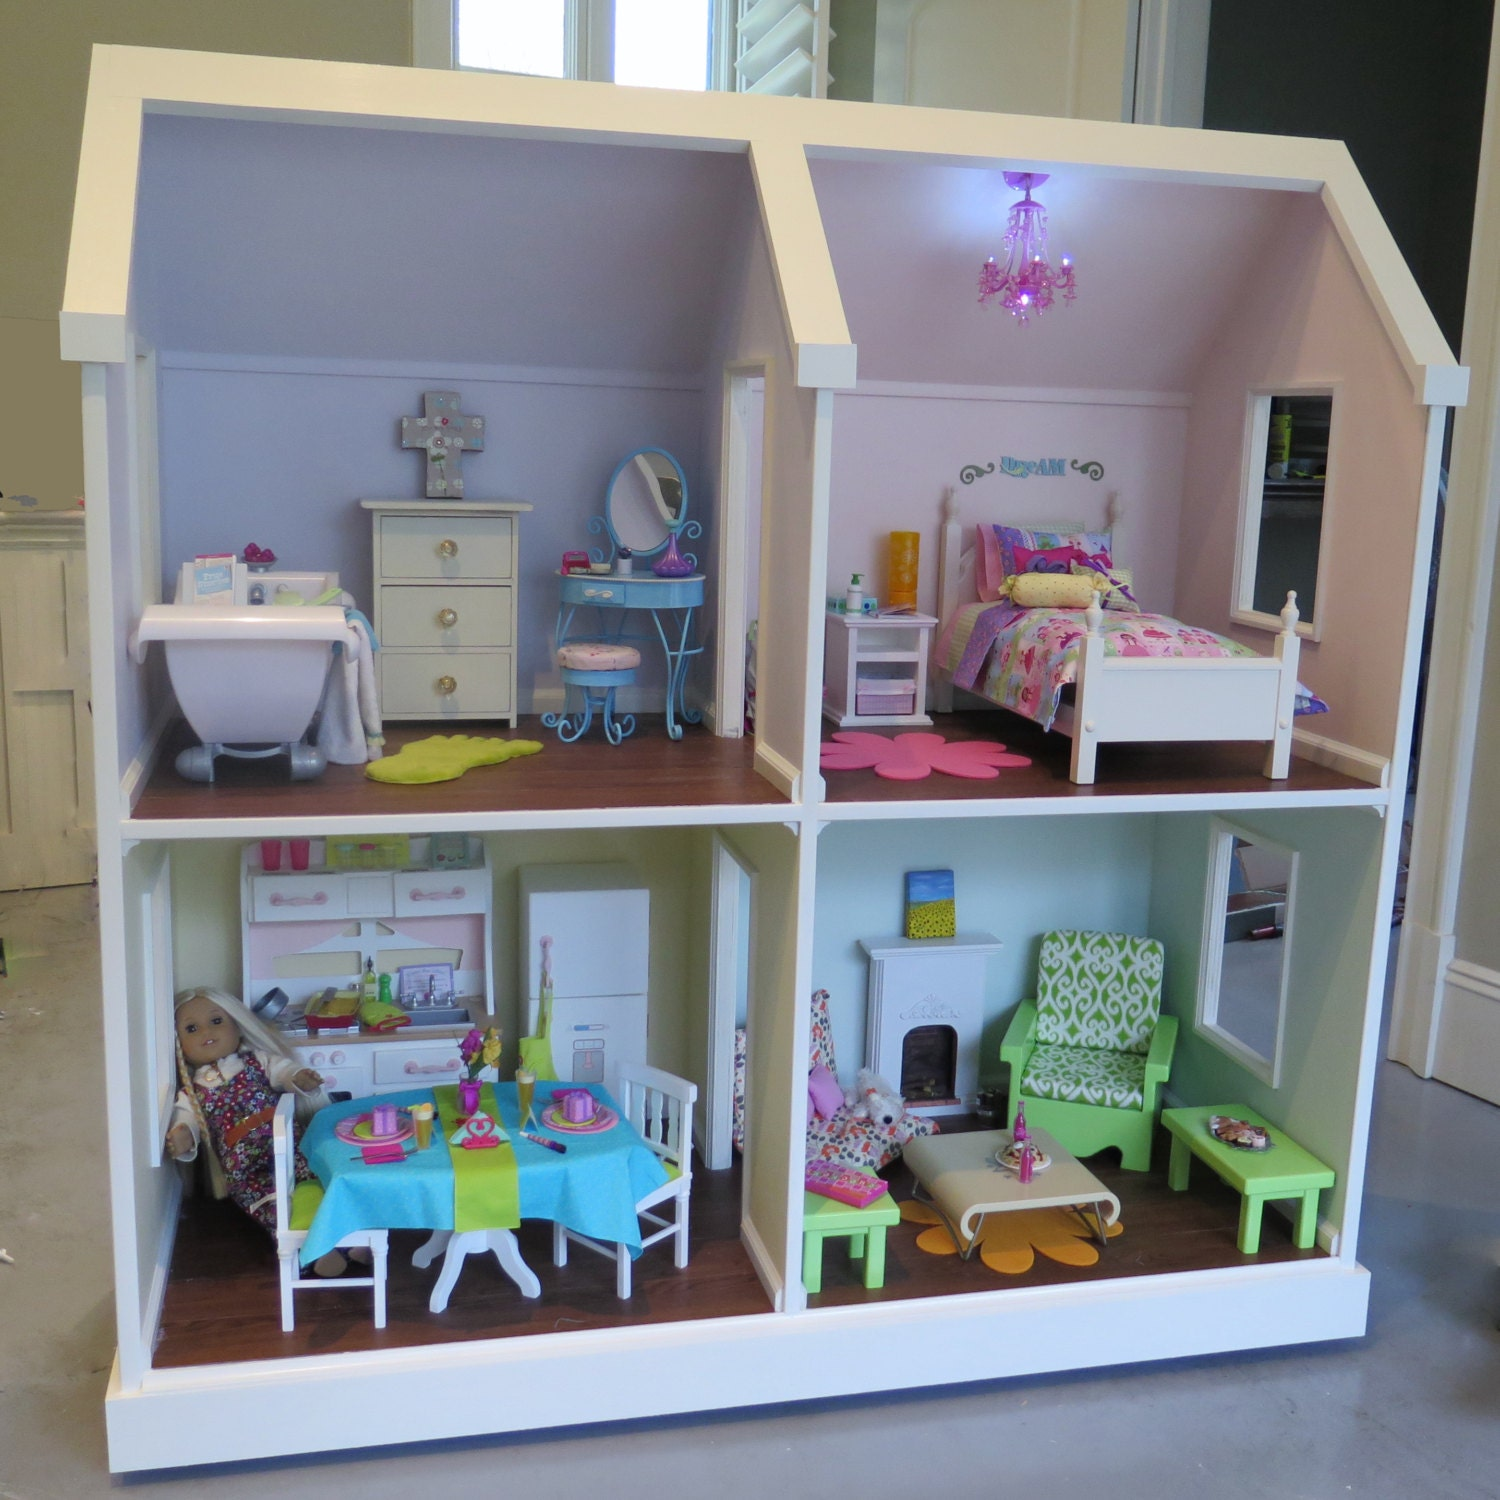 DIY American Girl Doll House Ana White | Three Story American Girl ...